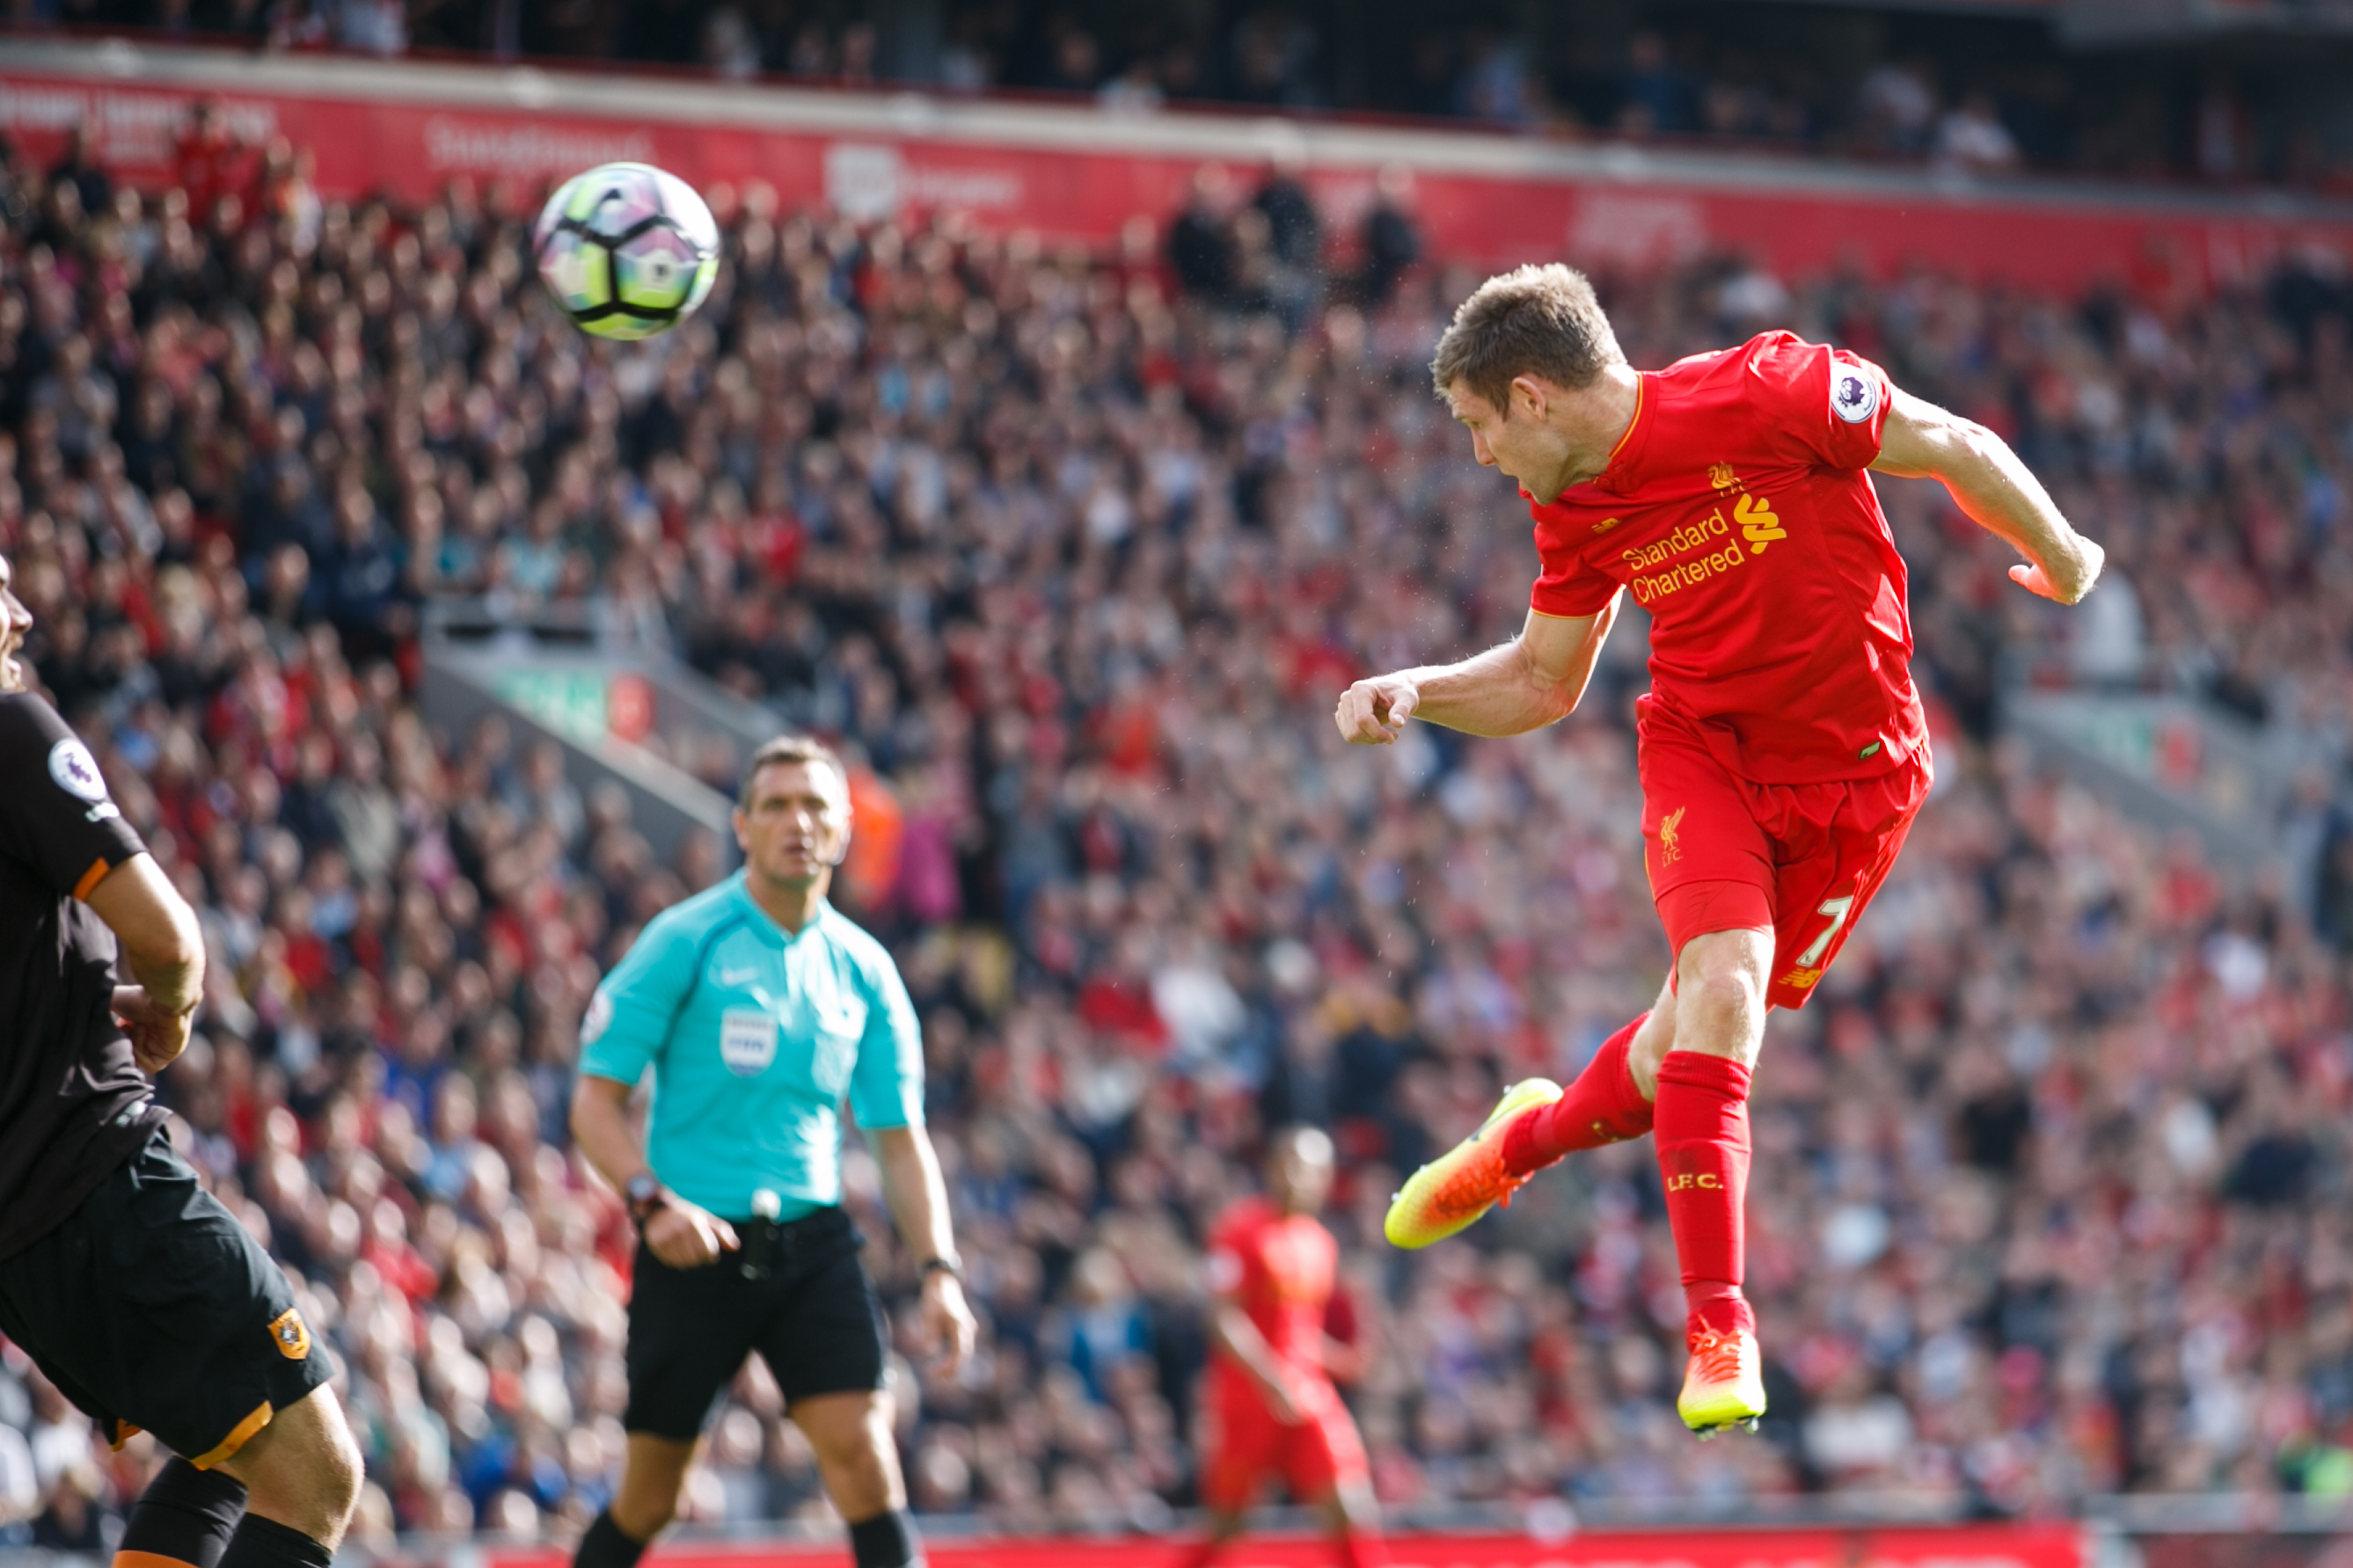 James Milner reveals why Liverpool are doing so well